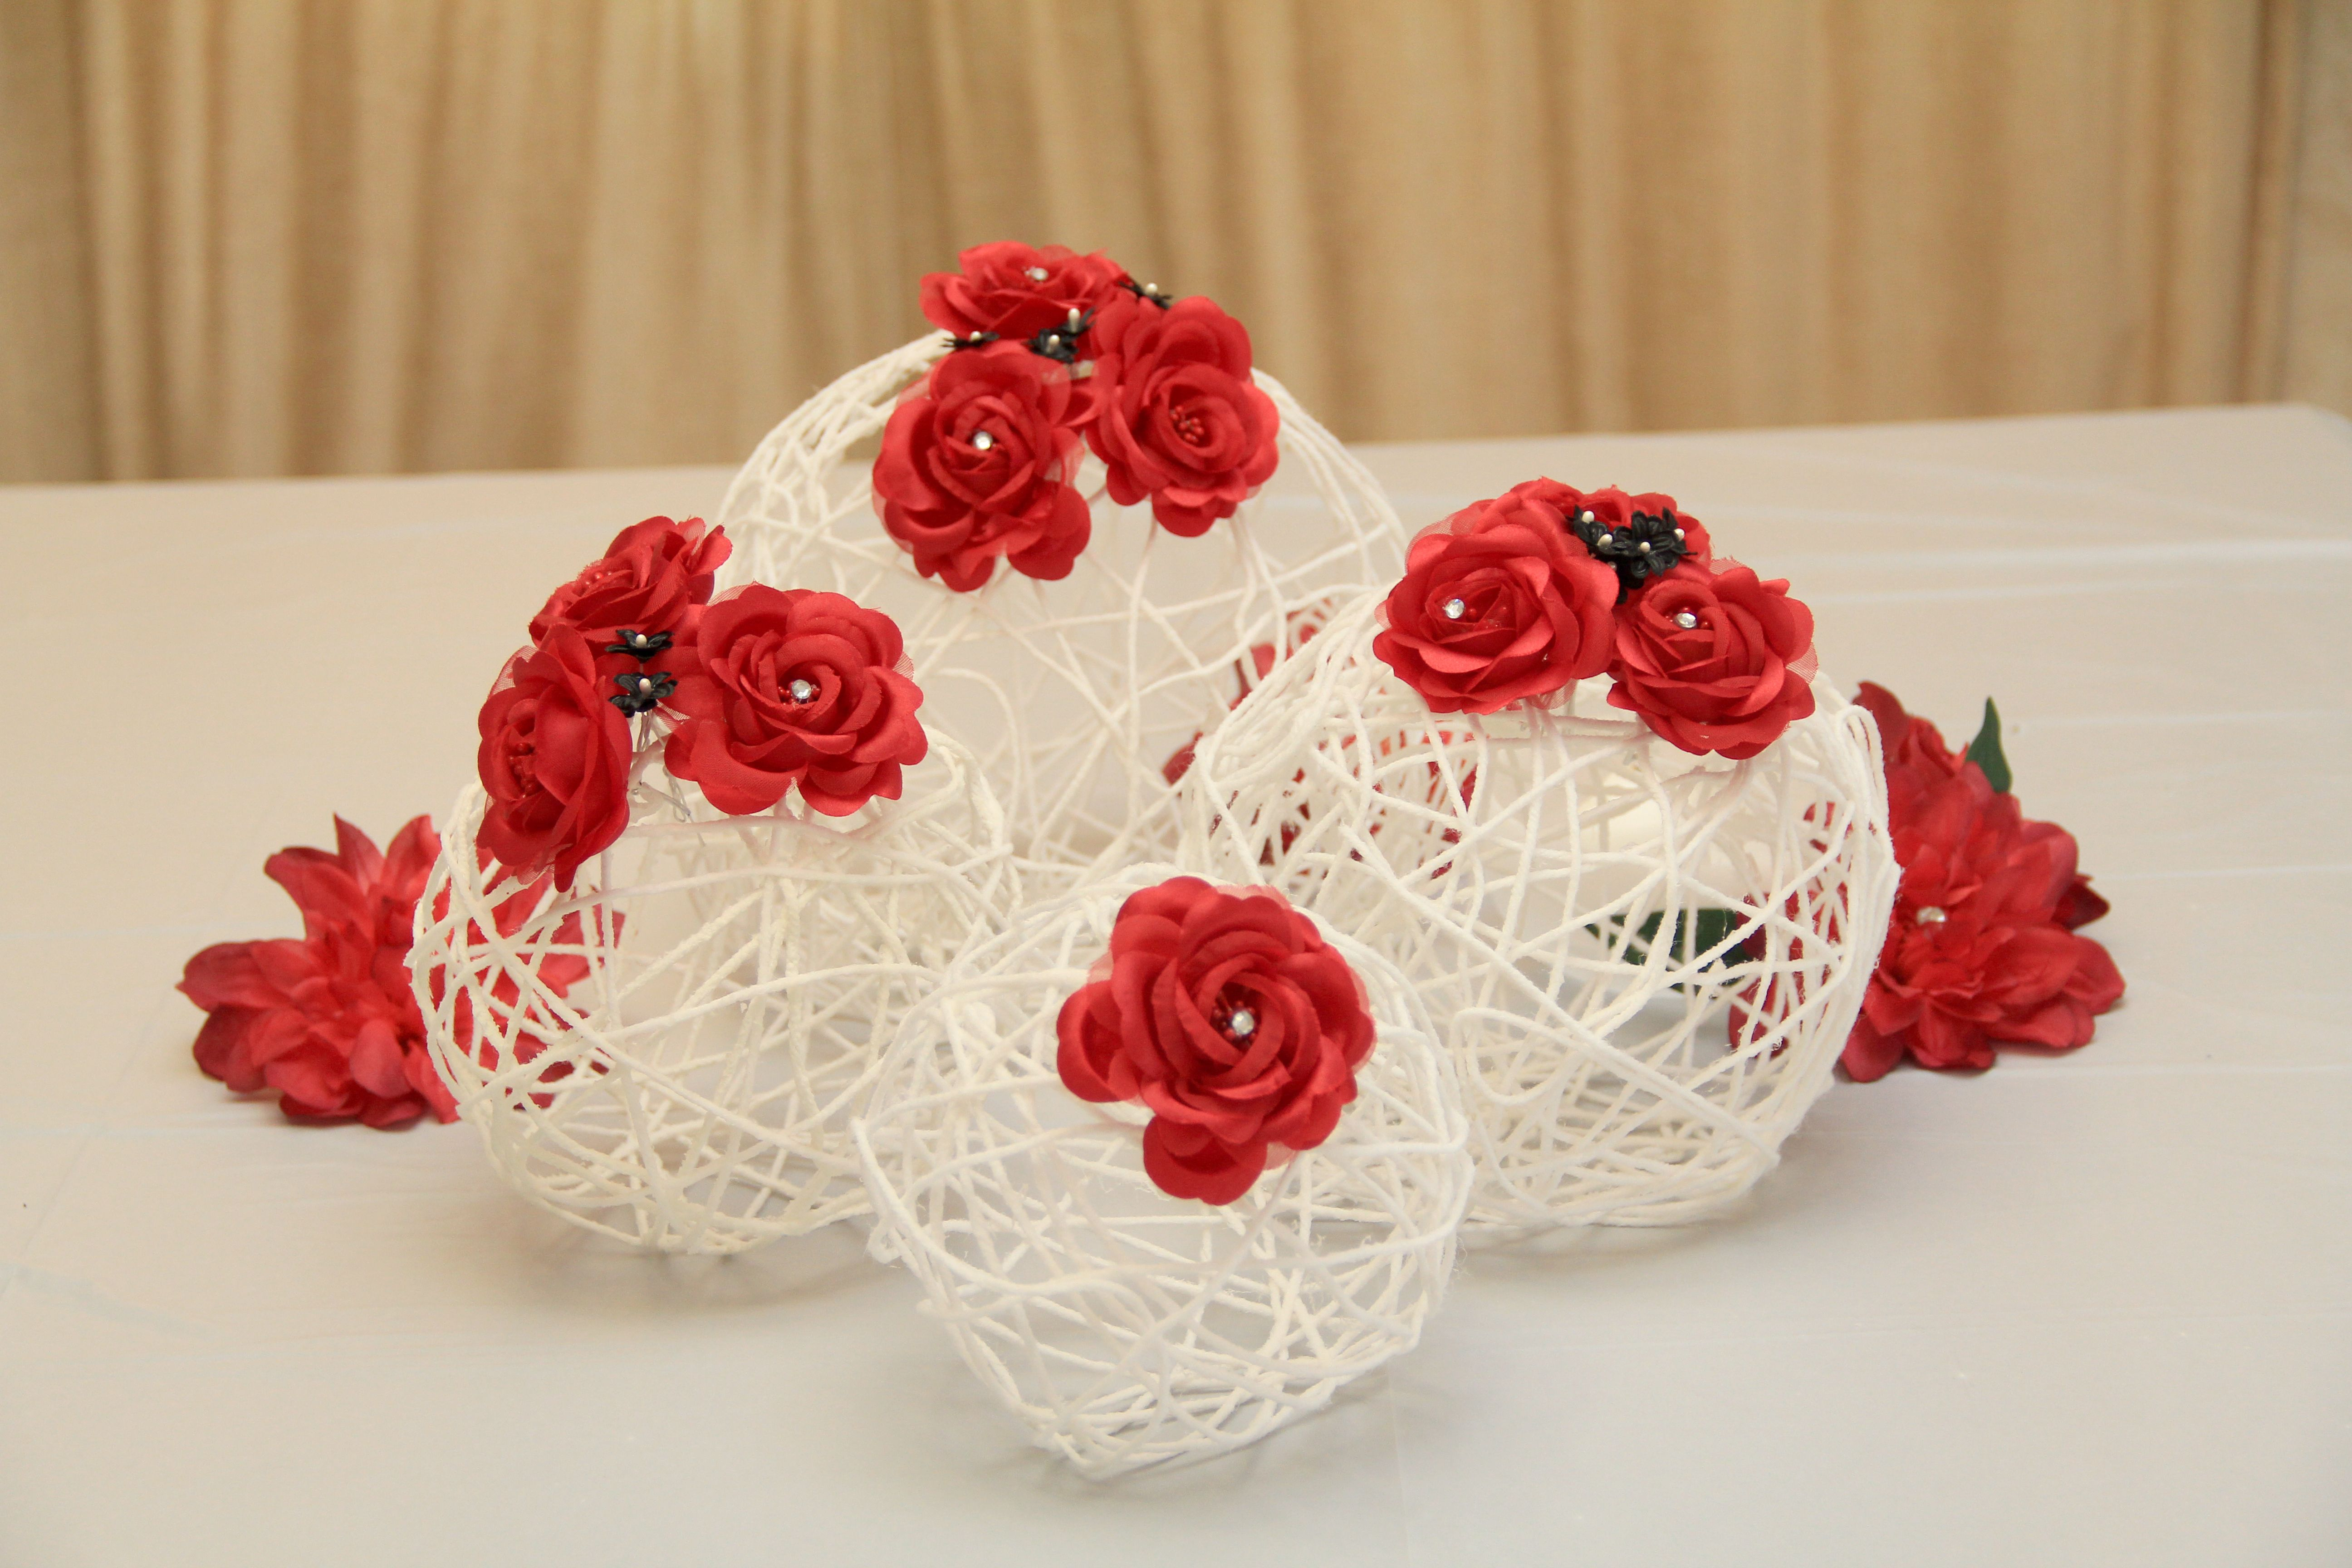 Yarn Balls with Red Roses